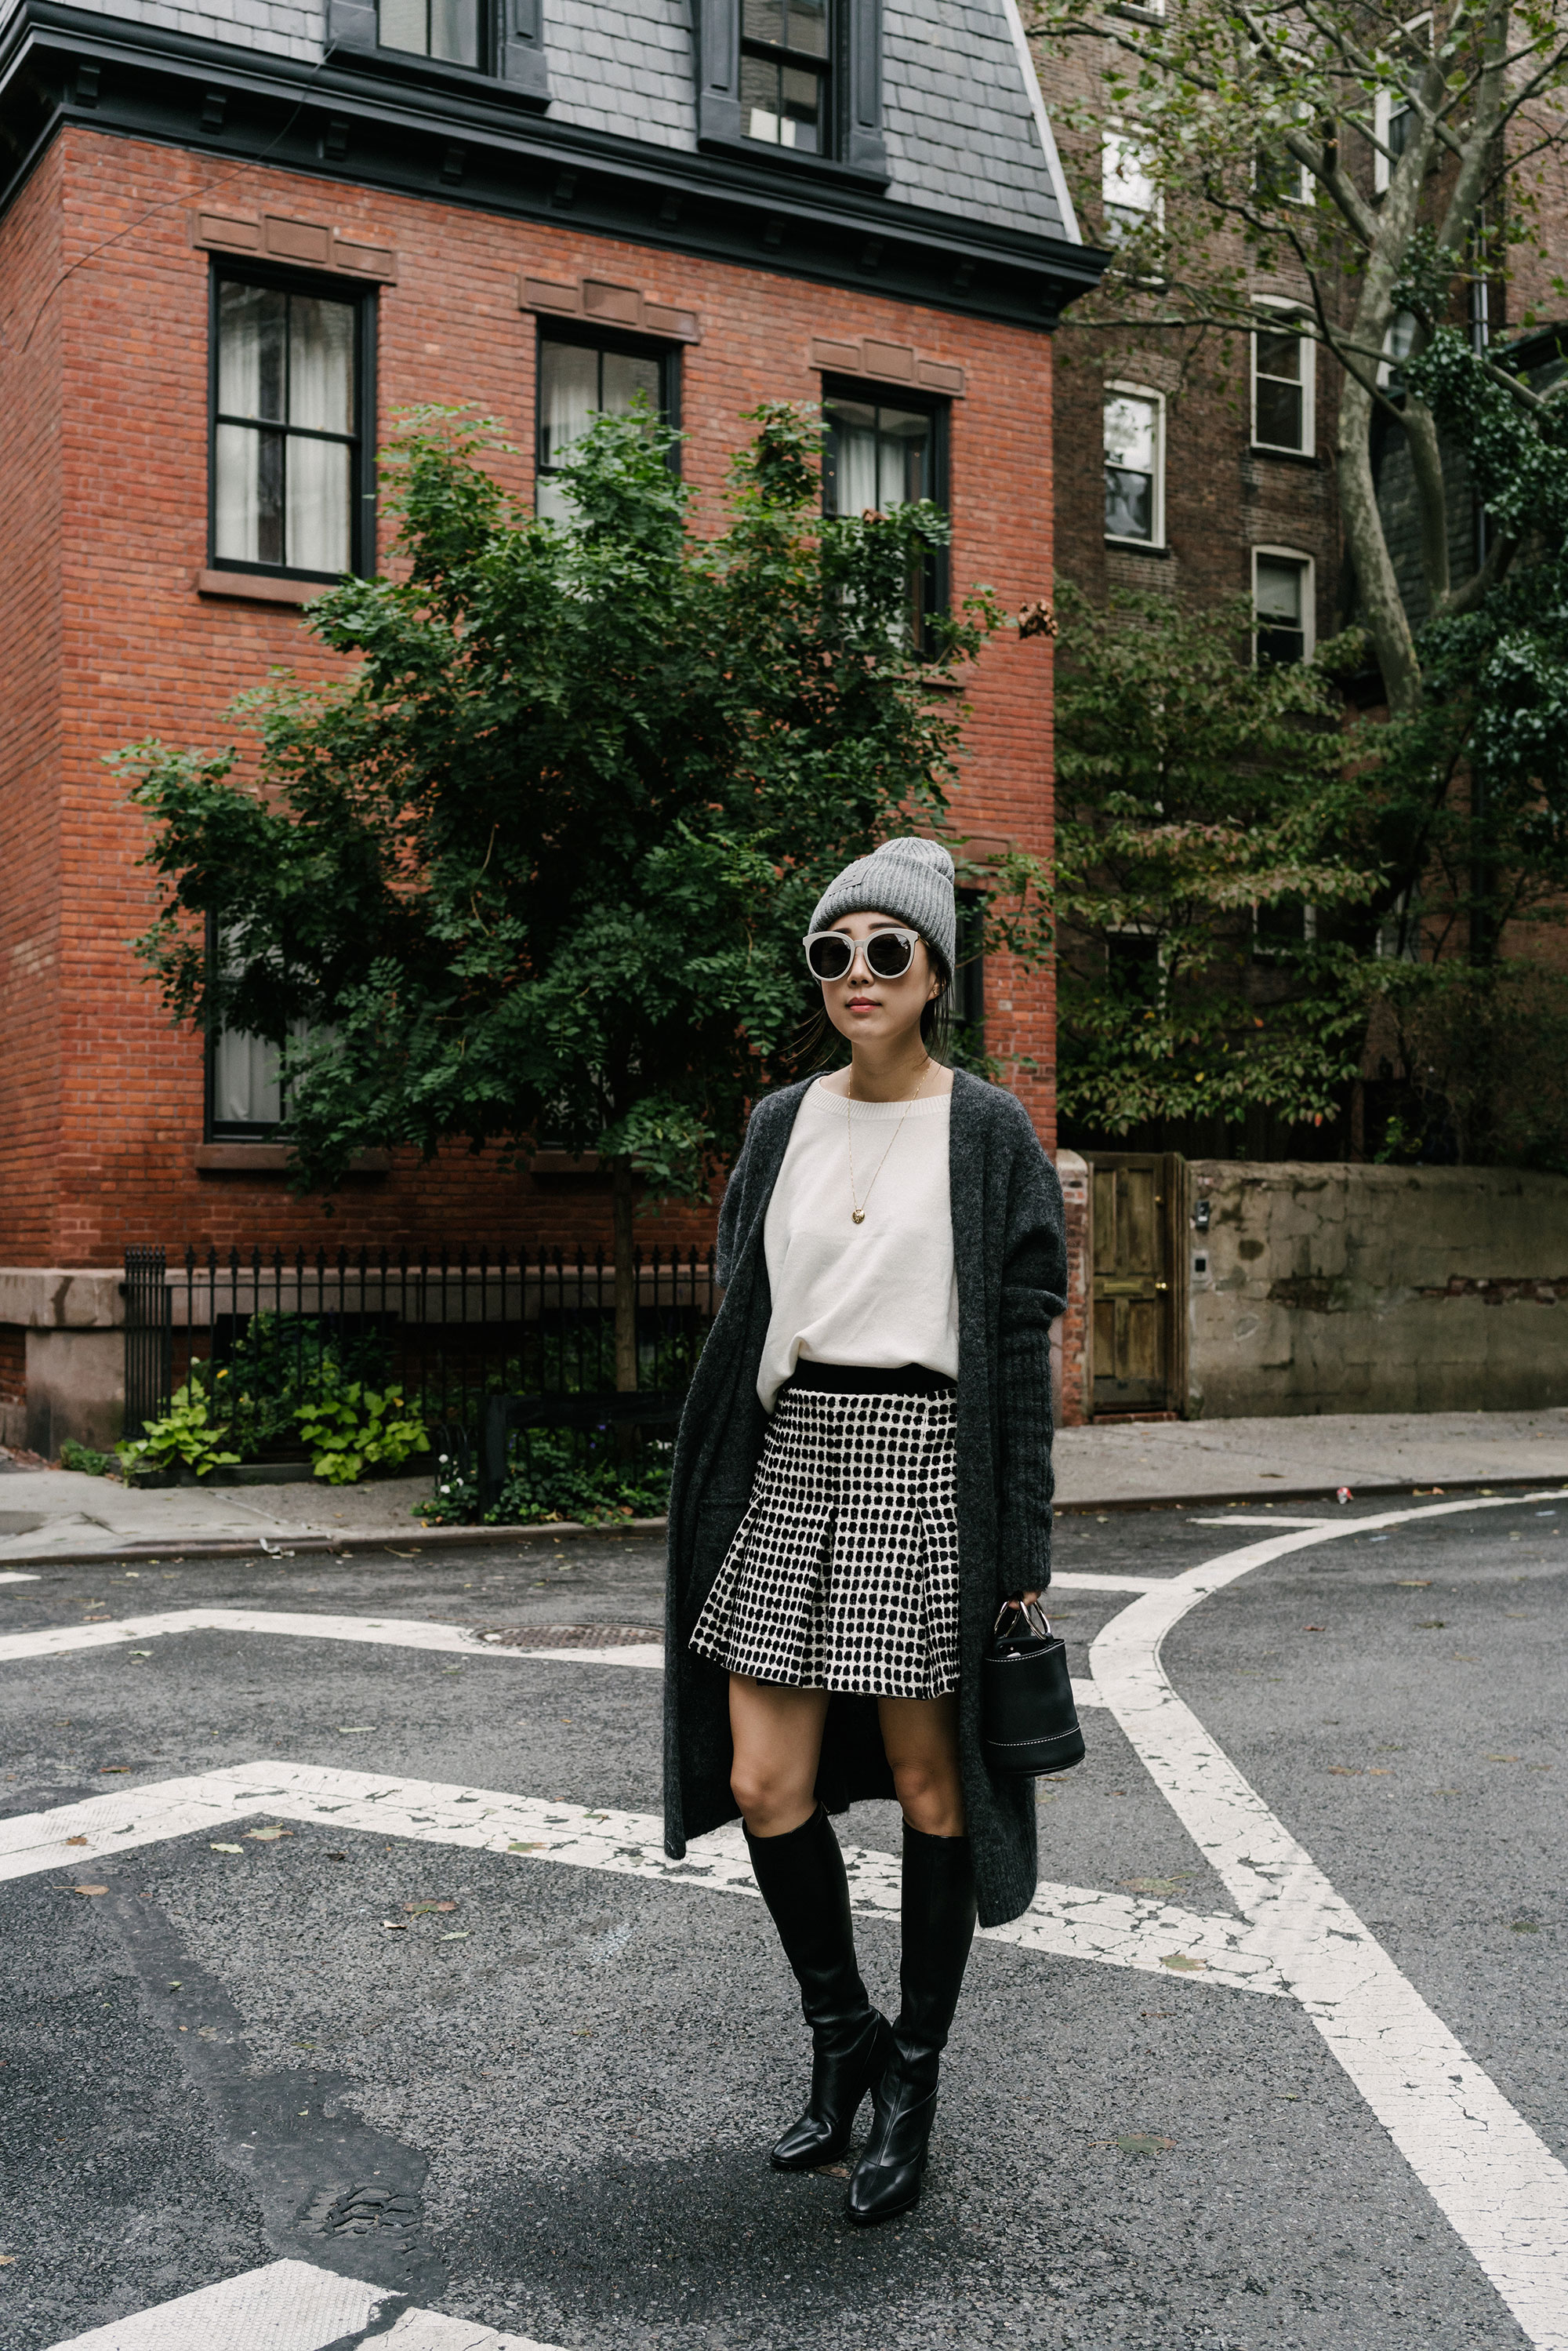 Acne Studios Cardigan  and  Hat ,  Vince Top , Proenza Schouler Skirt, Balenciaga Boots, Simon Miller Bag, Gentle Monster Sunglasses